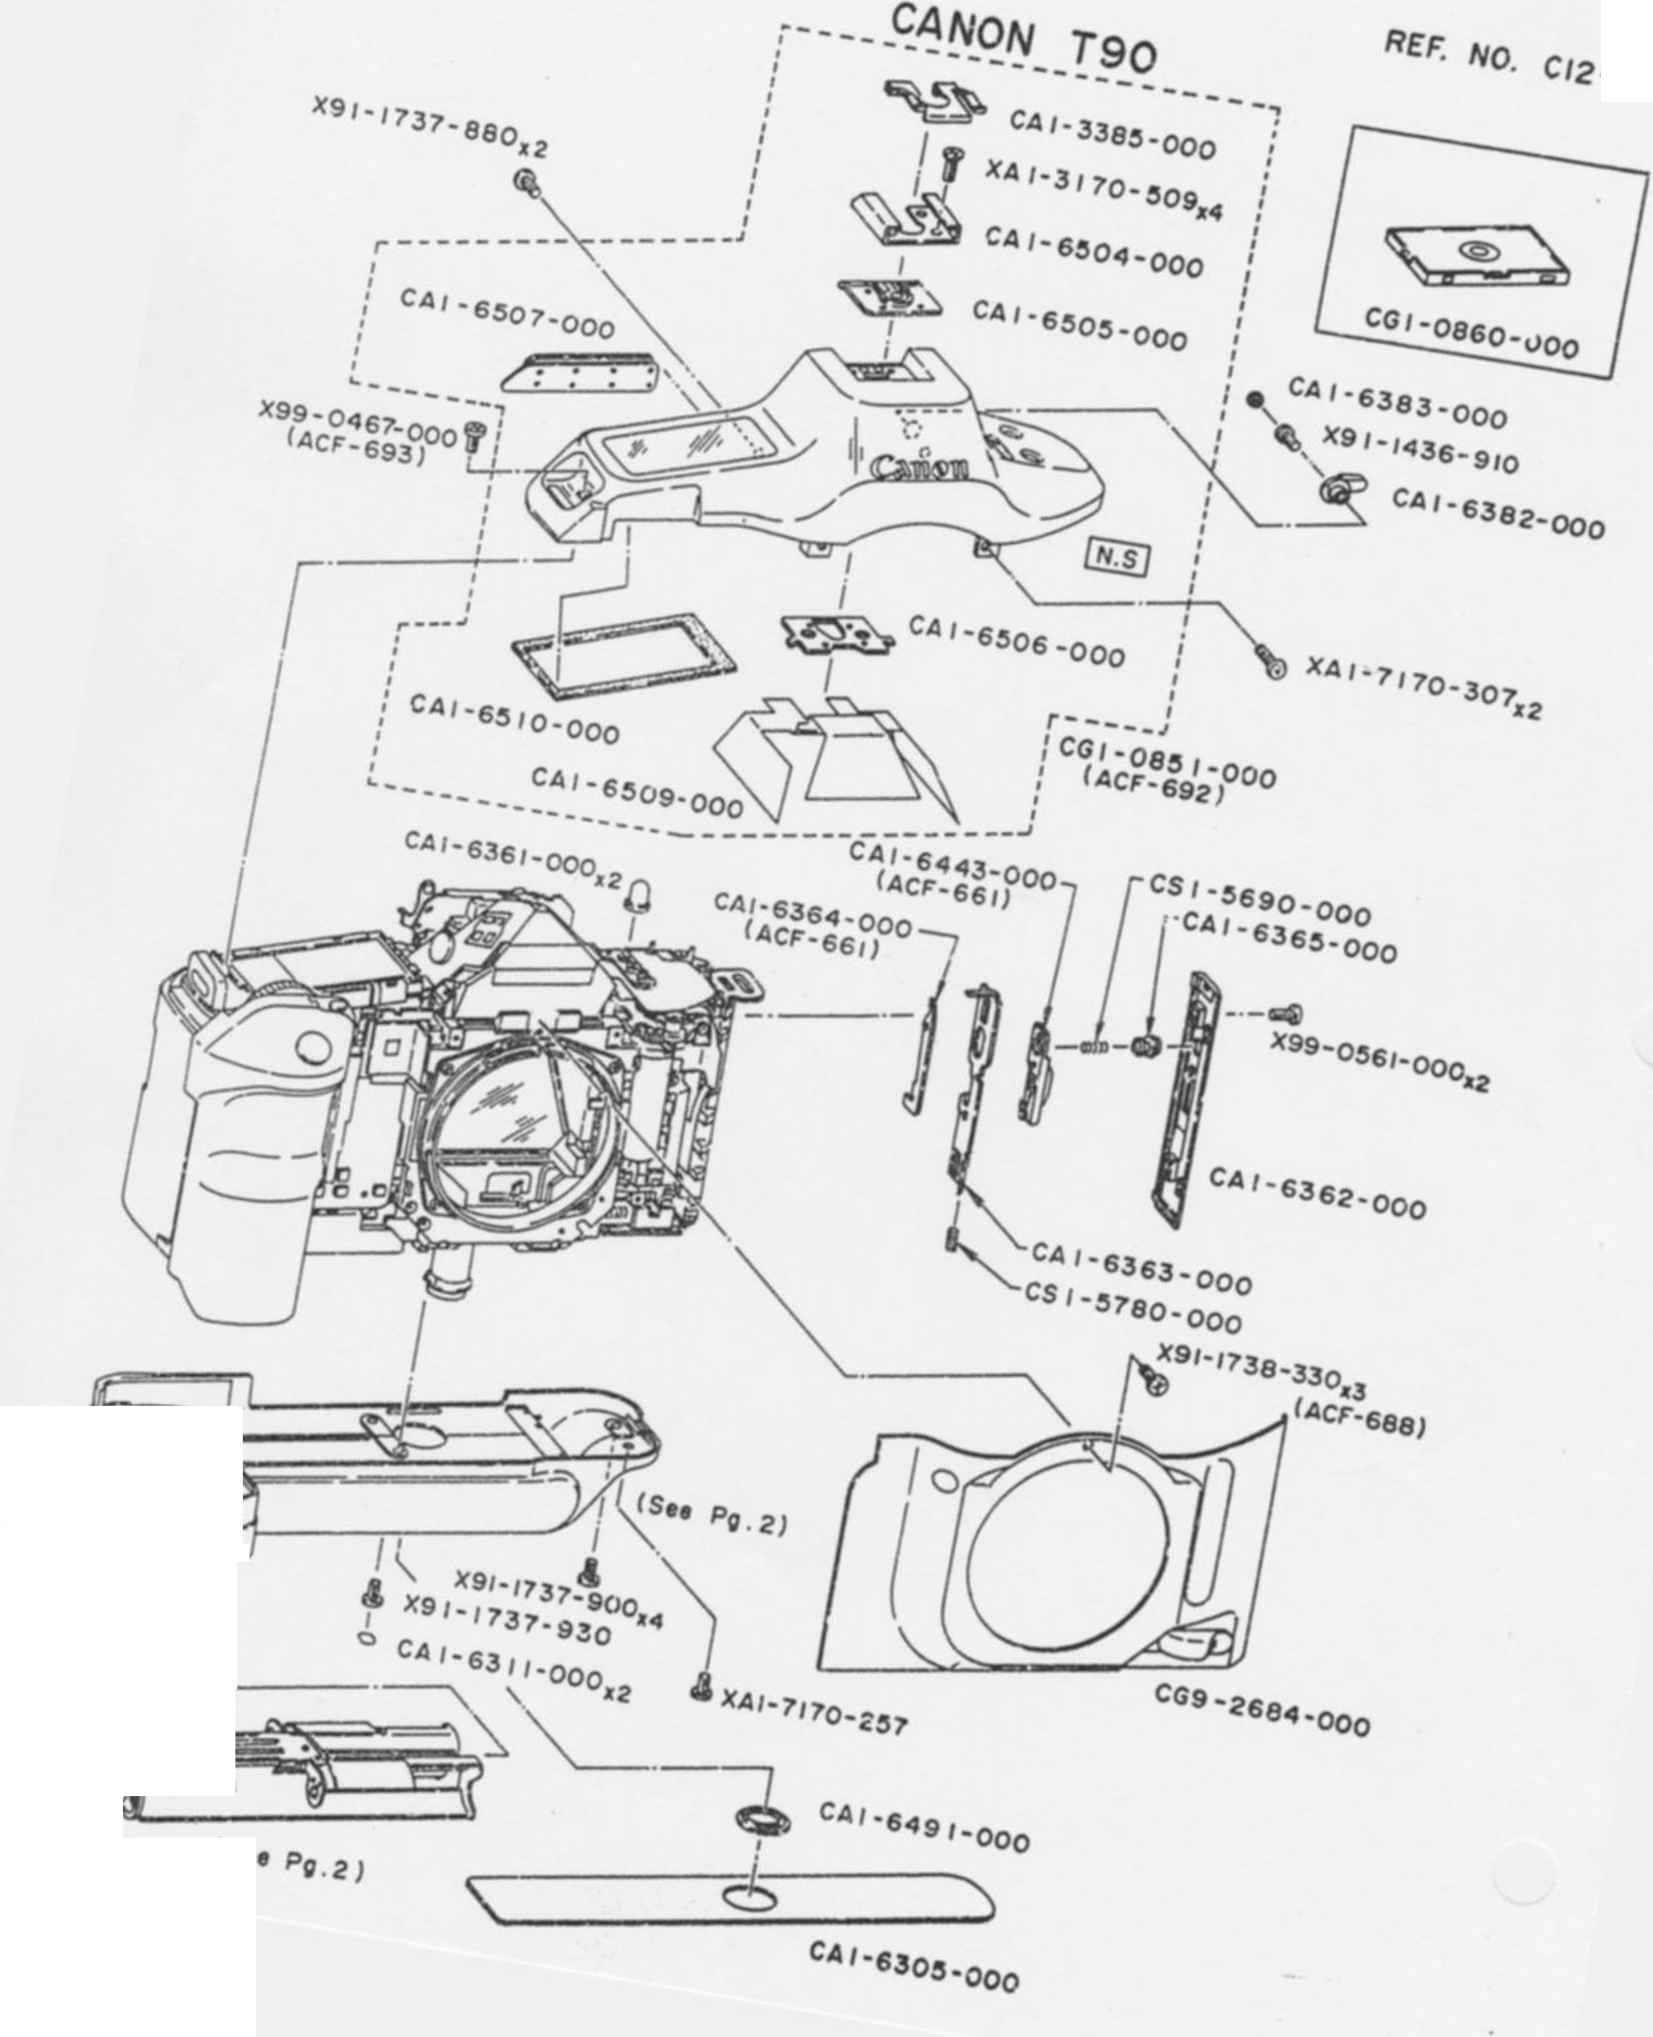 Individual Electrical Components Which May Require